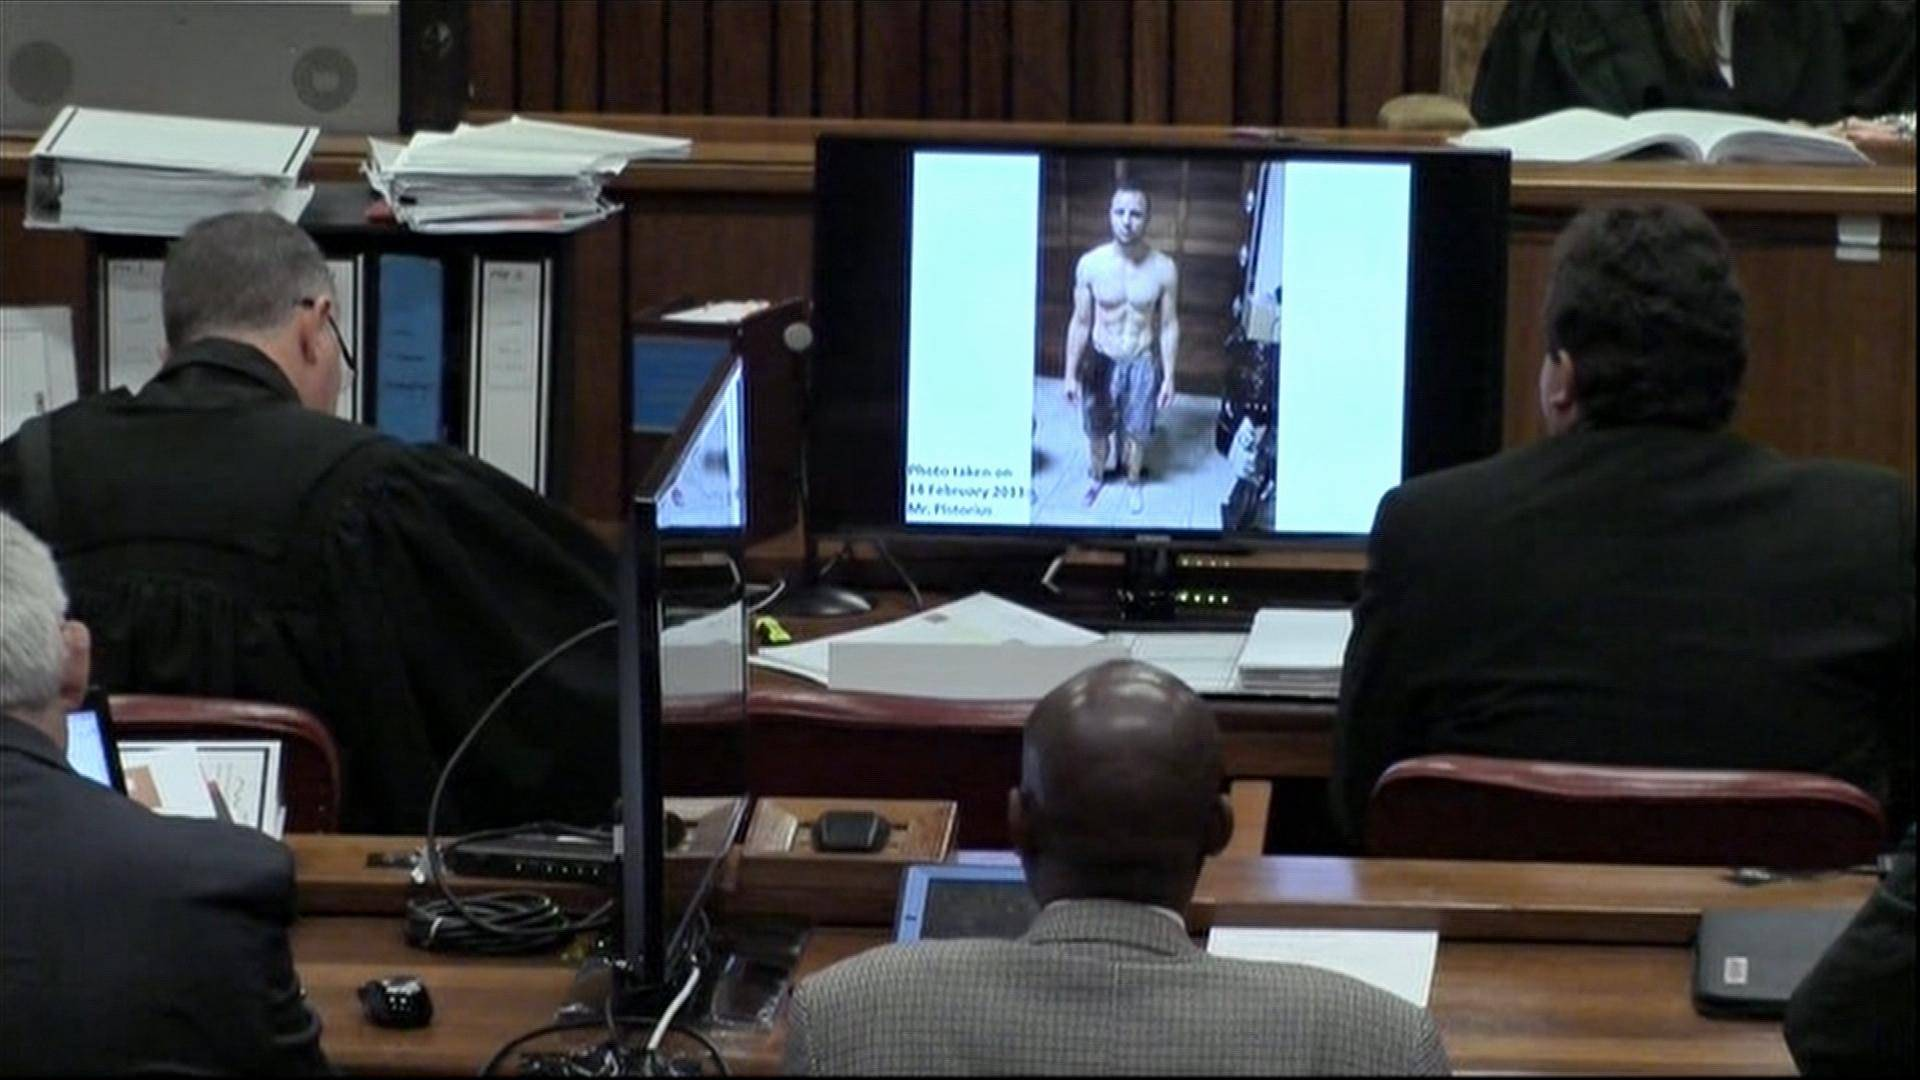 A police photograph of Oscar Pistorius standing on his bloodstained prosthetic legs and wearing shorts covered in blood, taken shortly after the athlete fatally shot his girlfriend, which was shown to the court in Pretoria, at his murder trial Friday, March 14, 2014.